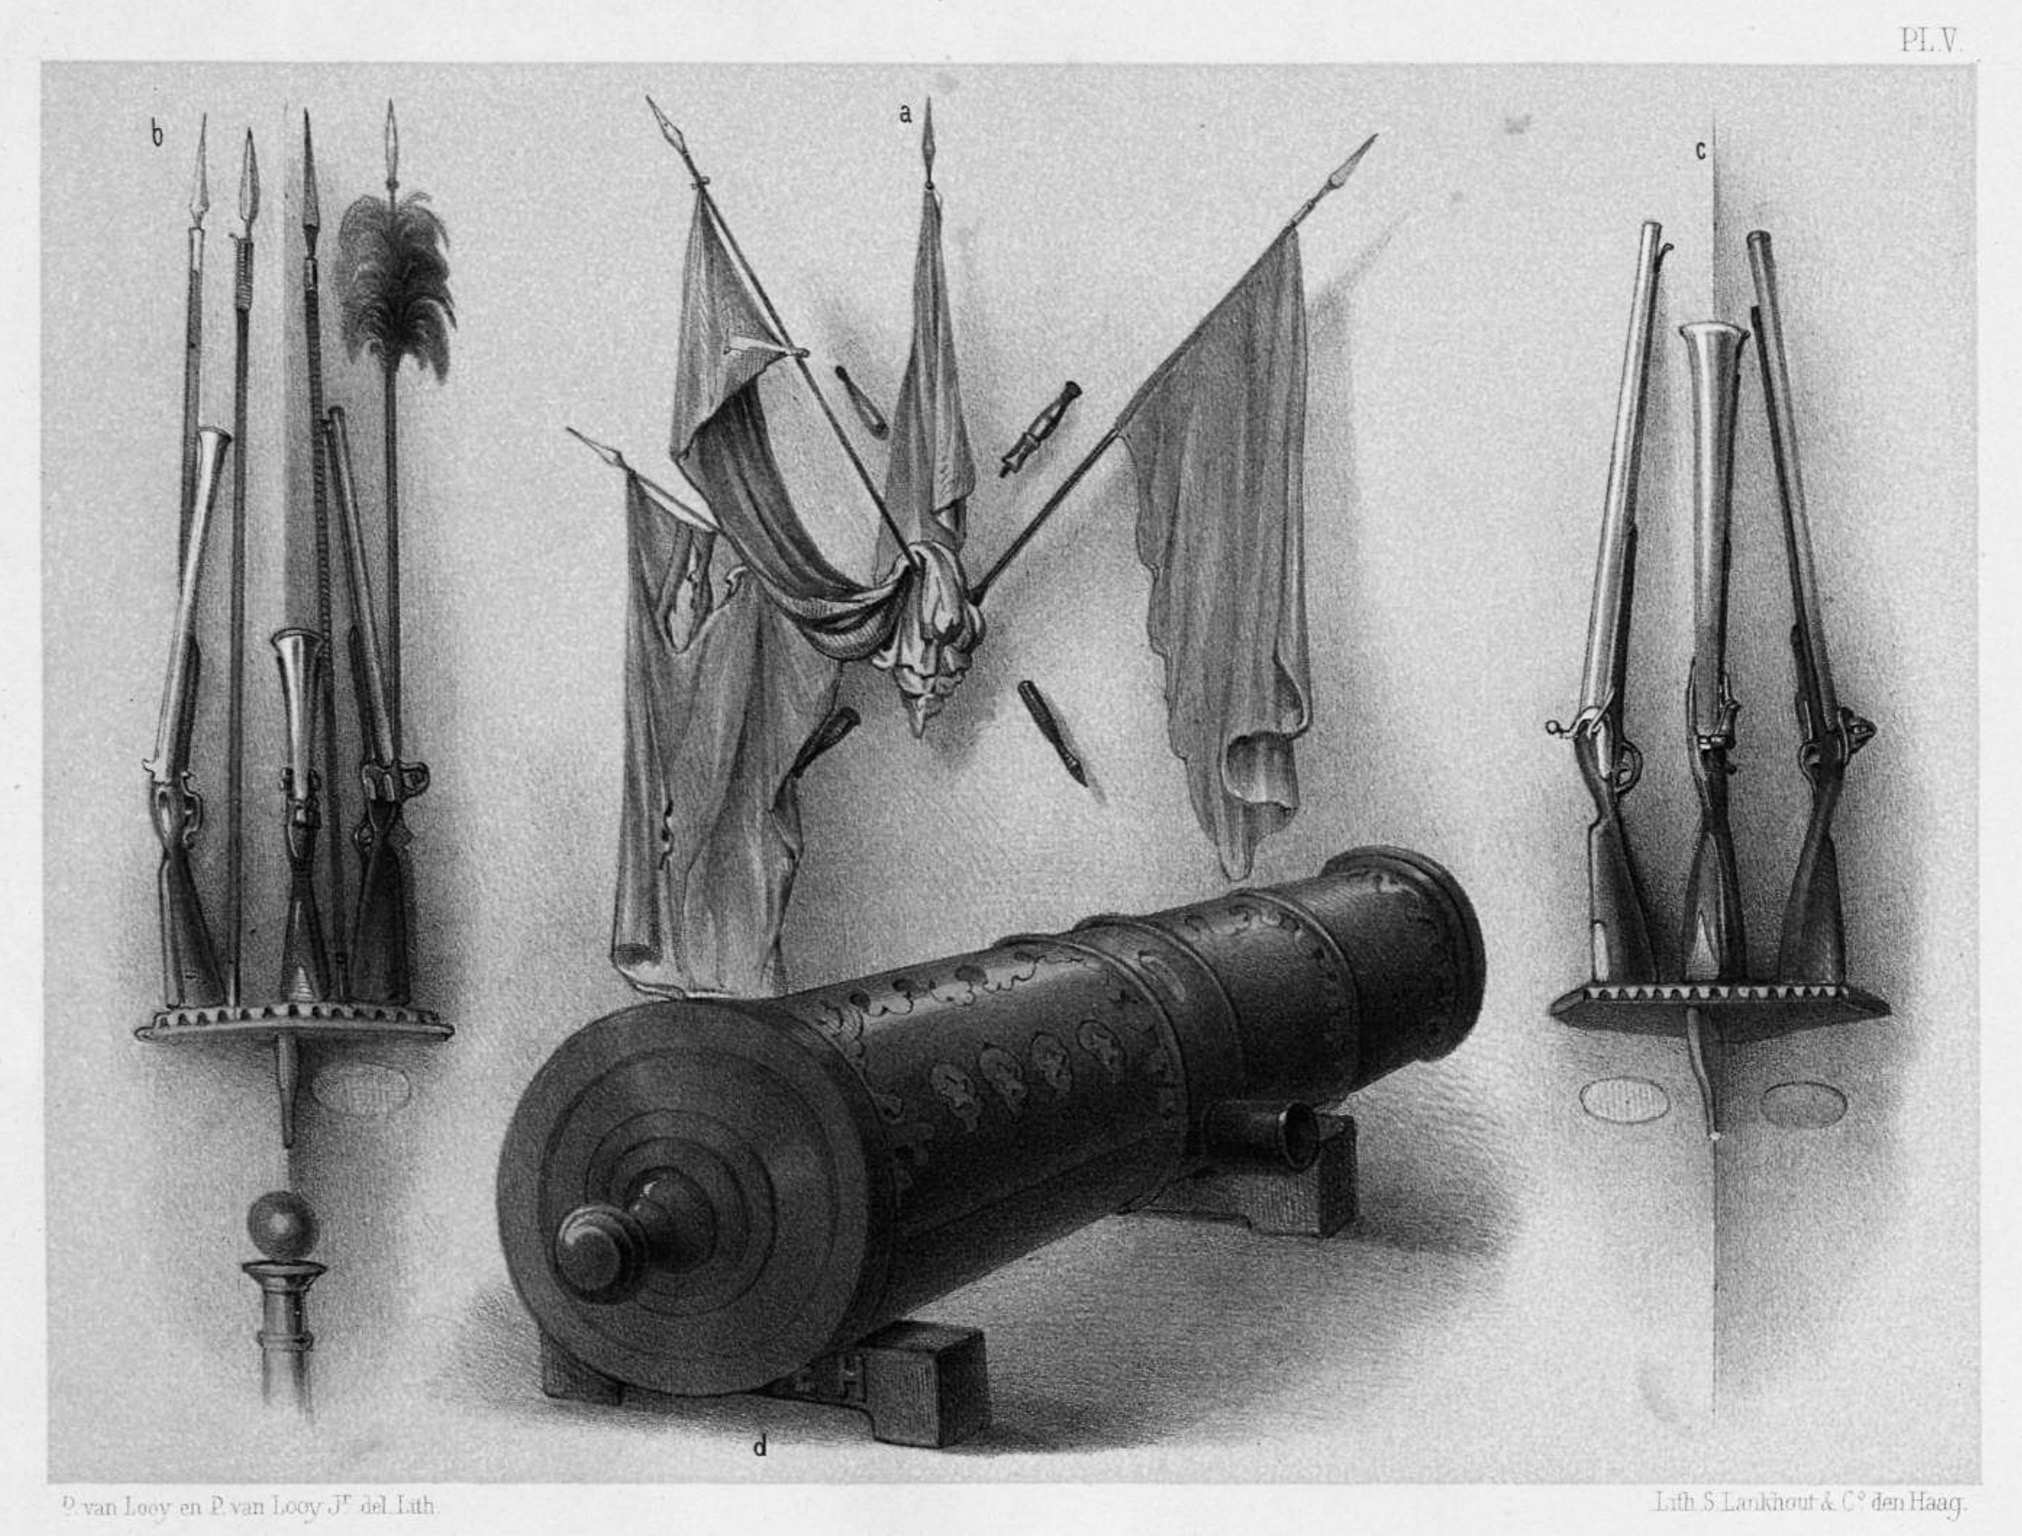 Items taking during the Banjarmasin wars